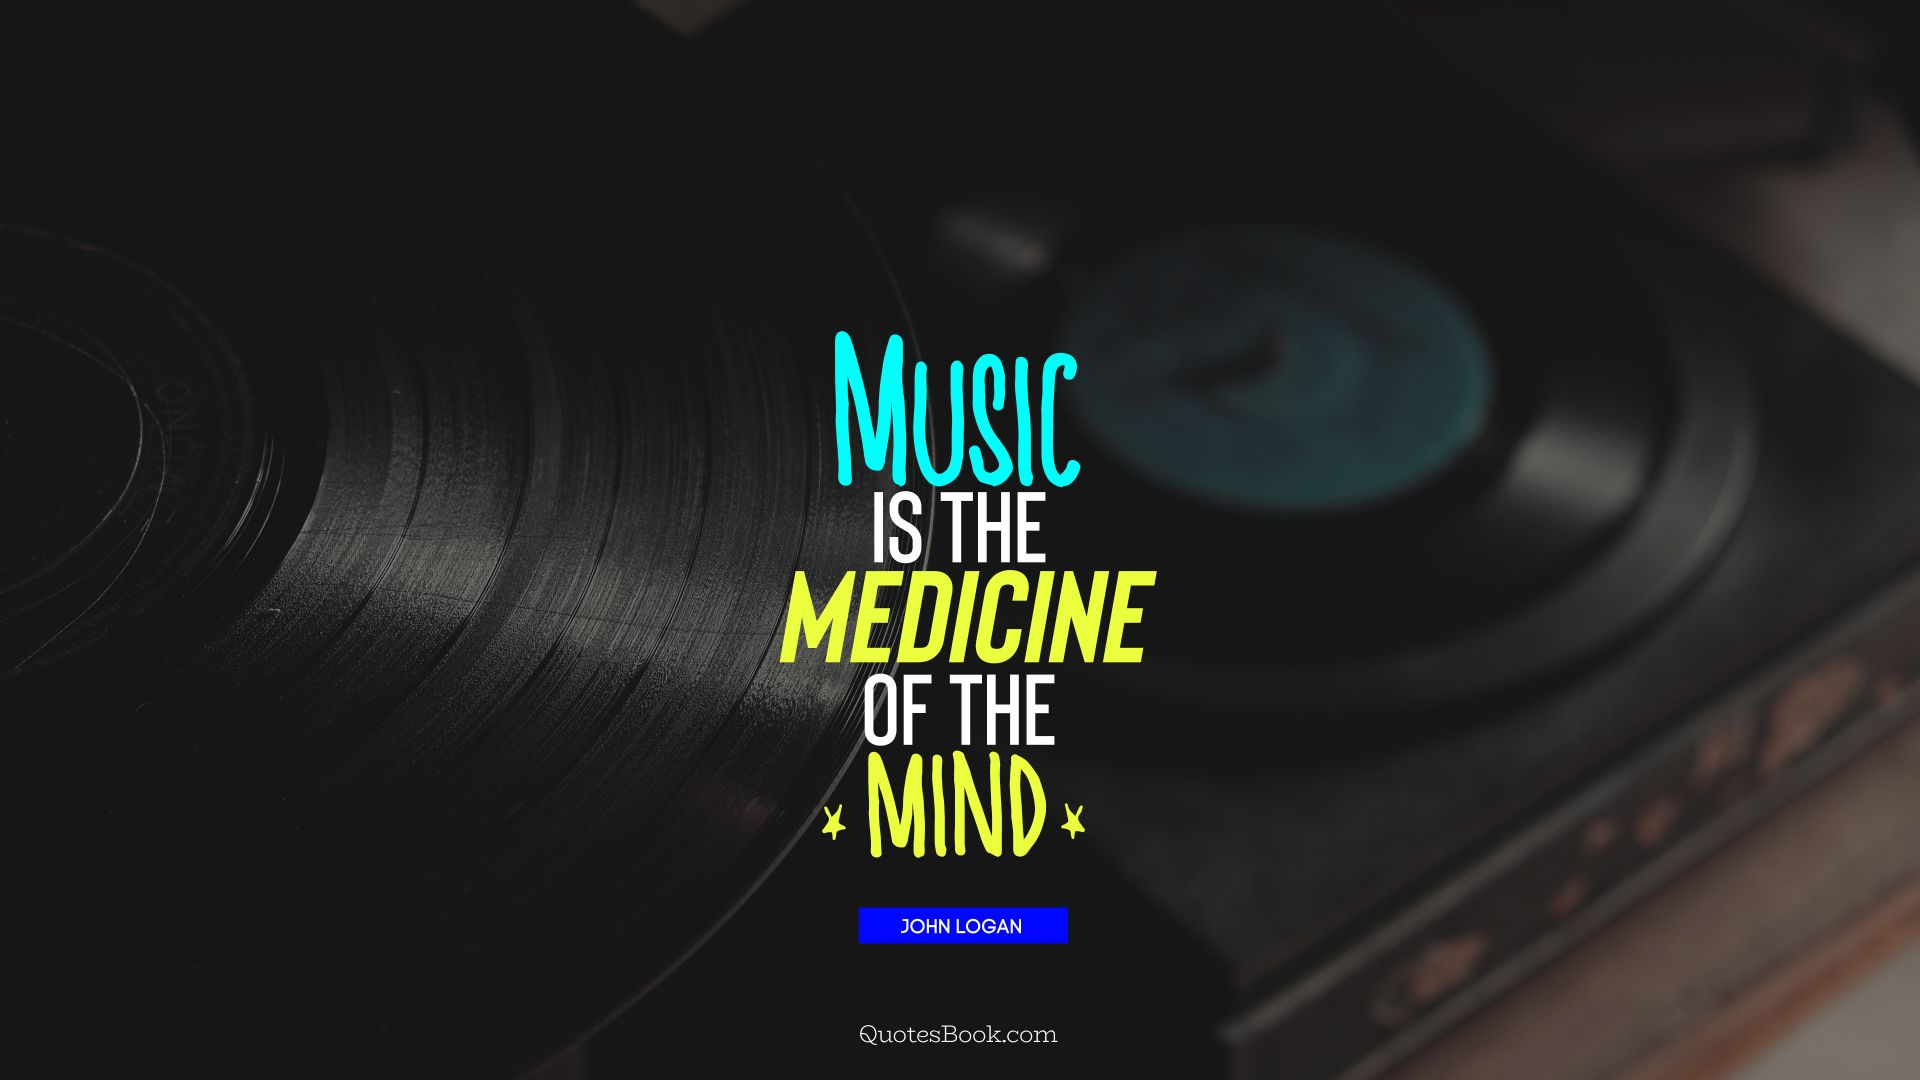 Music is the medicine of the mind. - Quote by John Logan